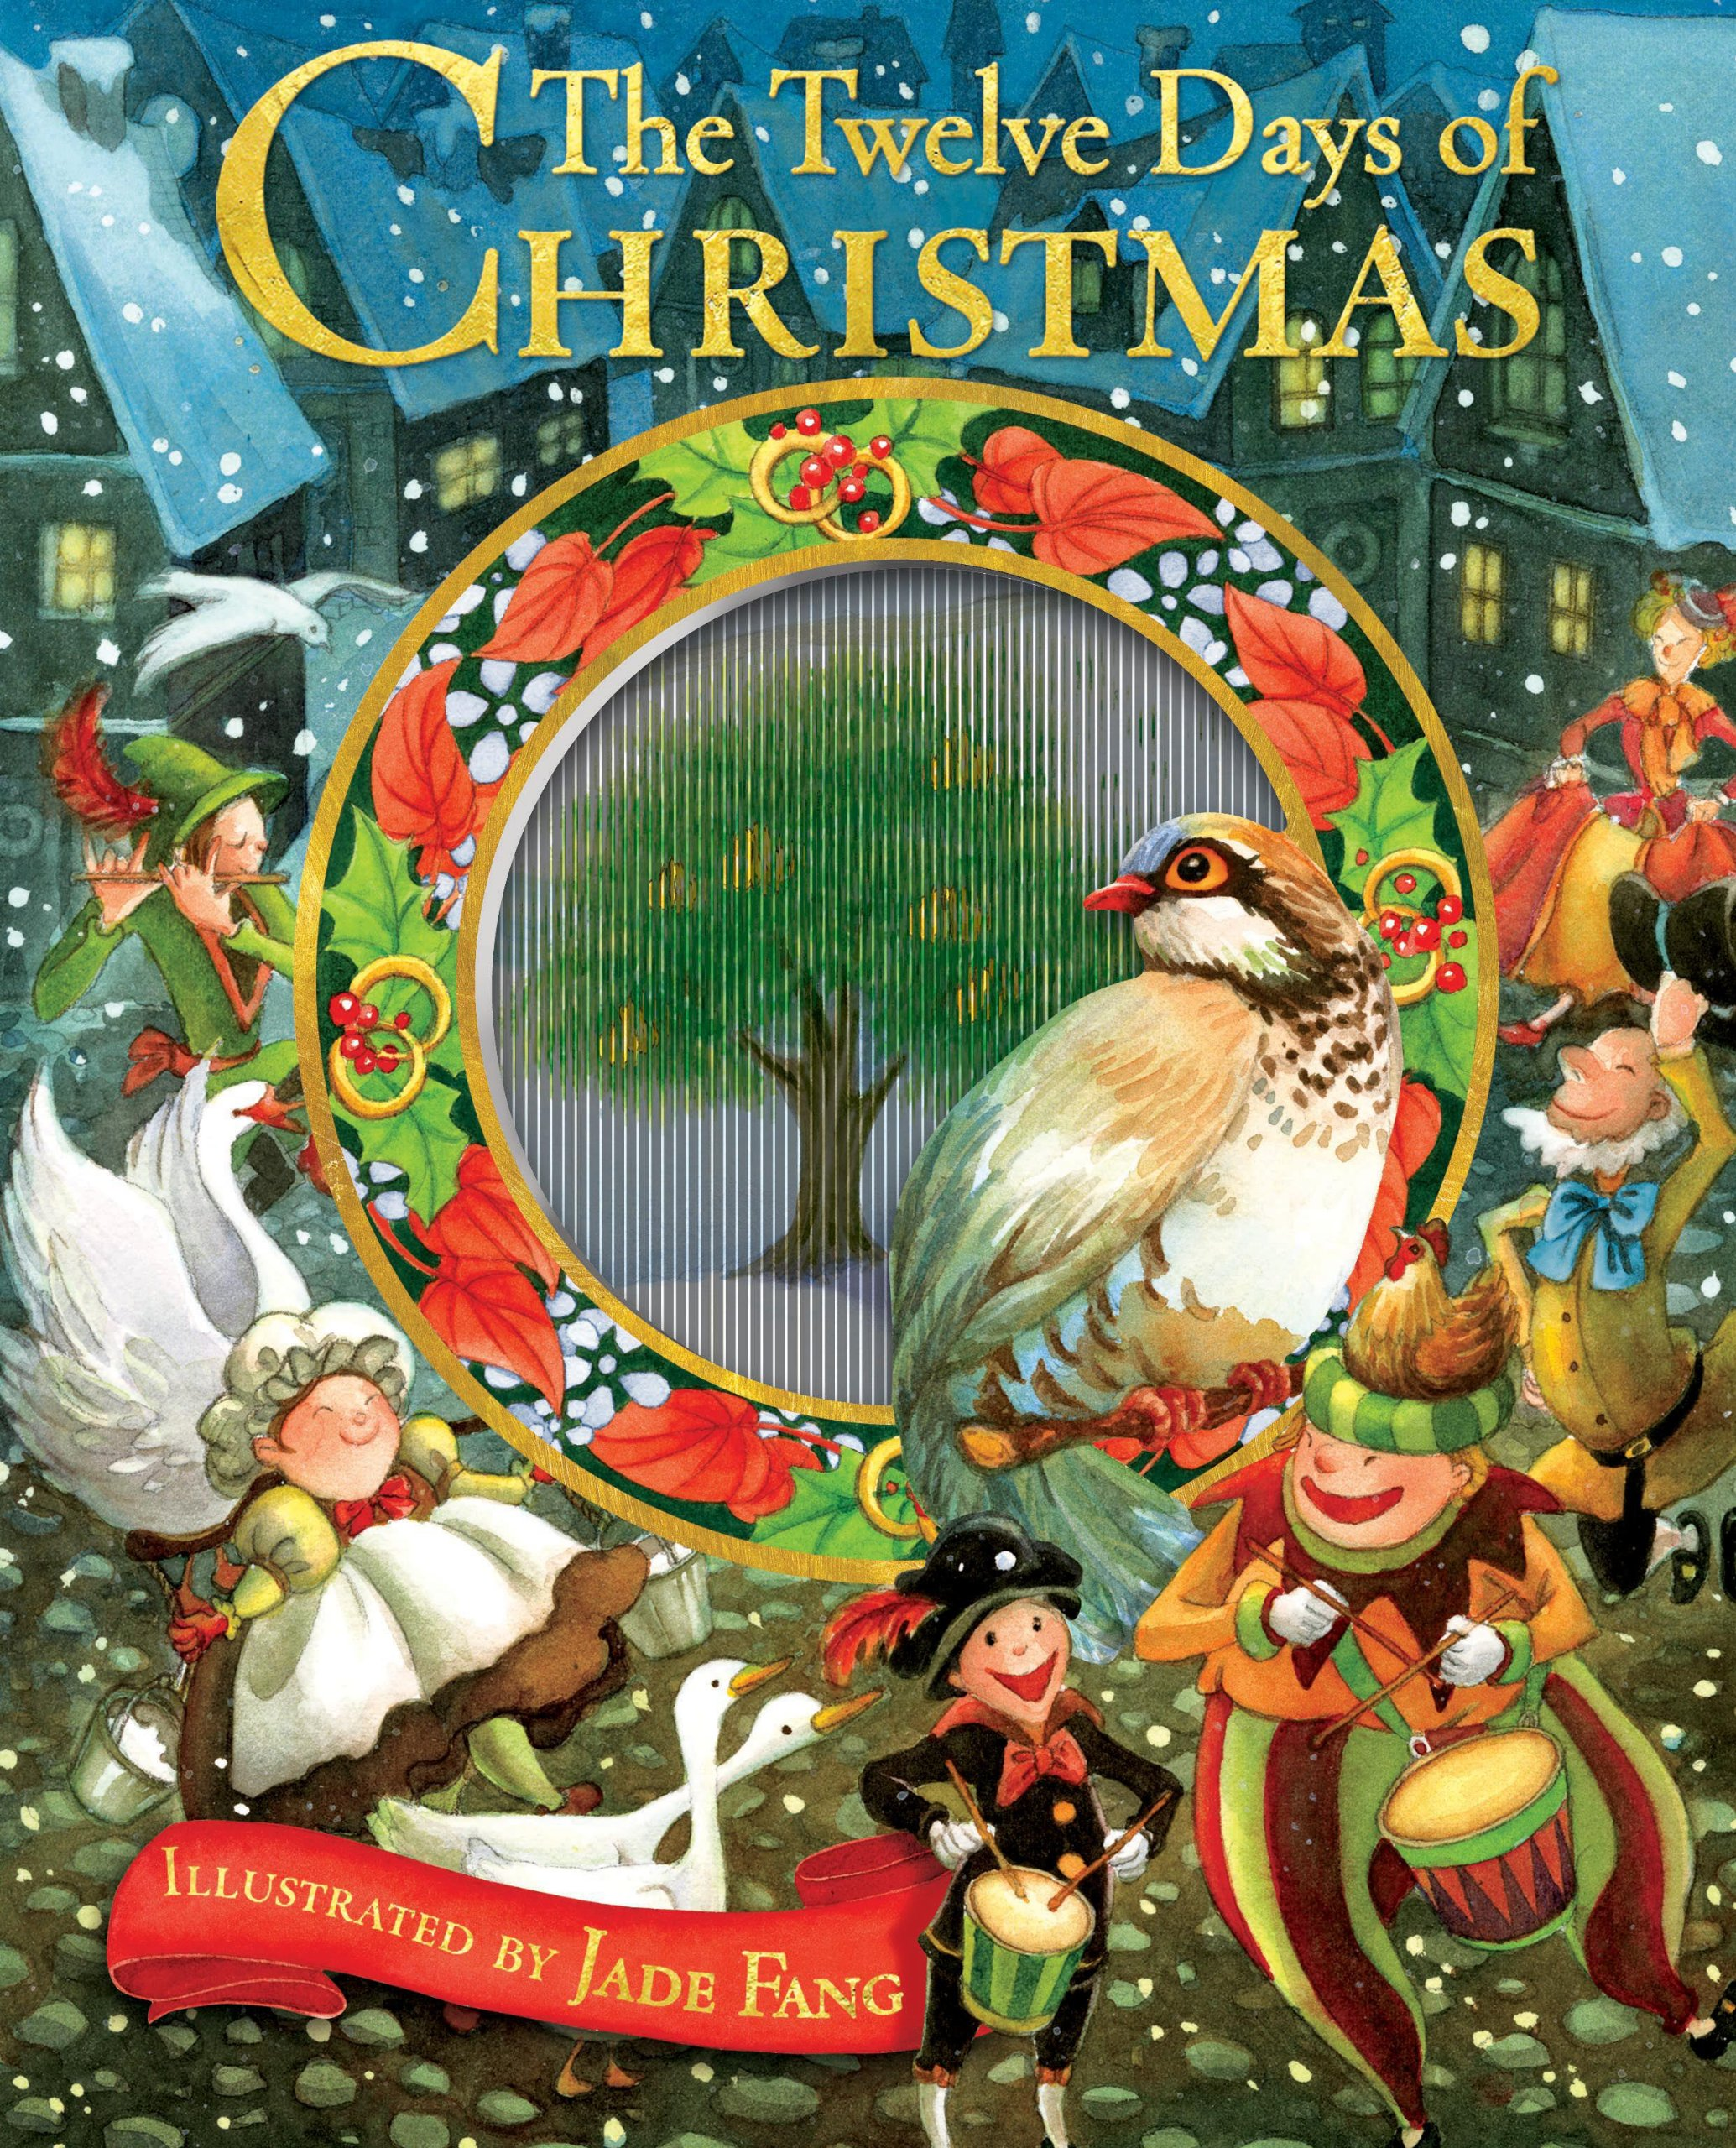 the twelve days of christmas accord publishing jade fang 9781449403614 amazoncom books - 12 Days Of Christmas Book